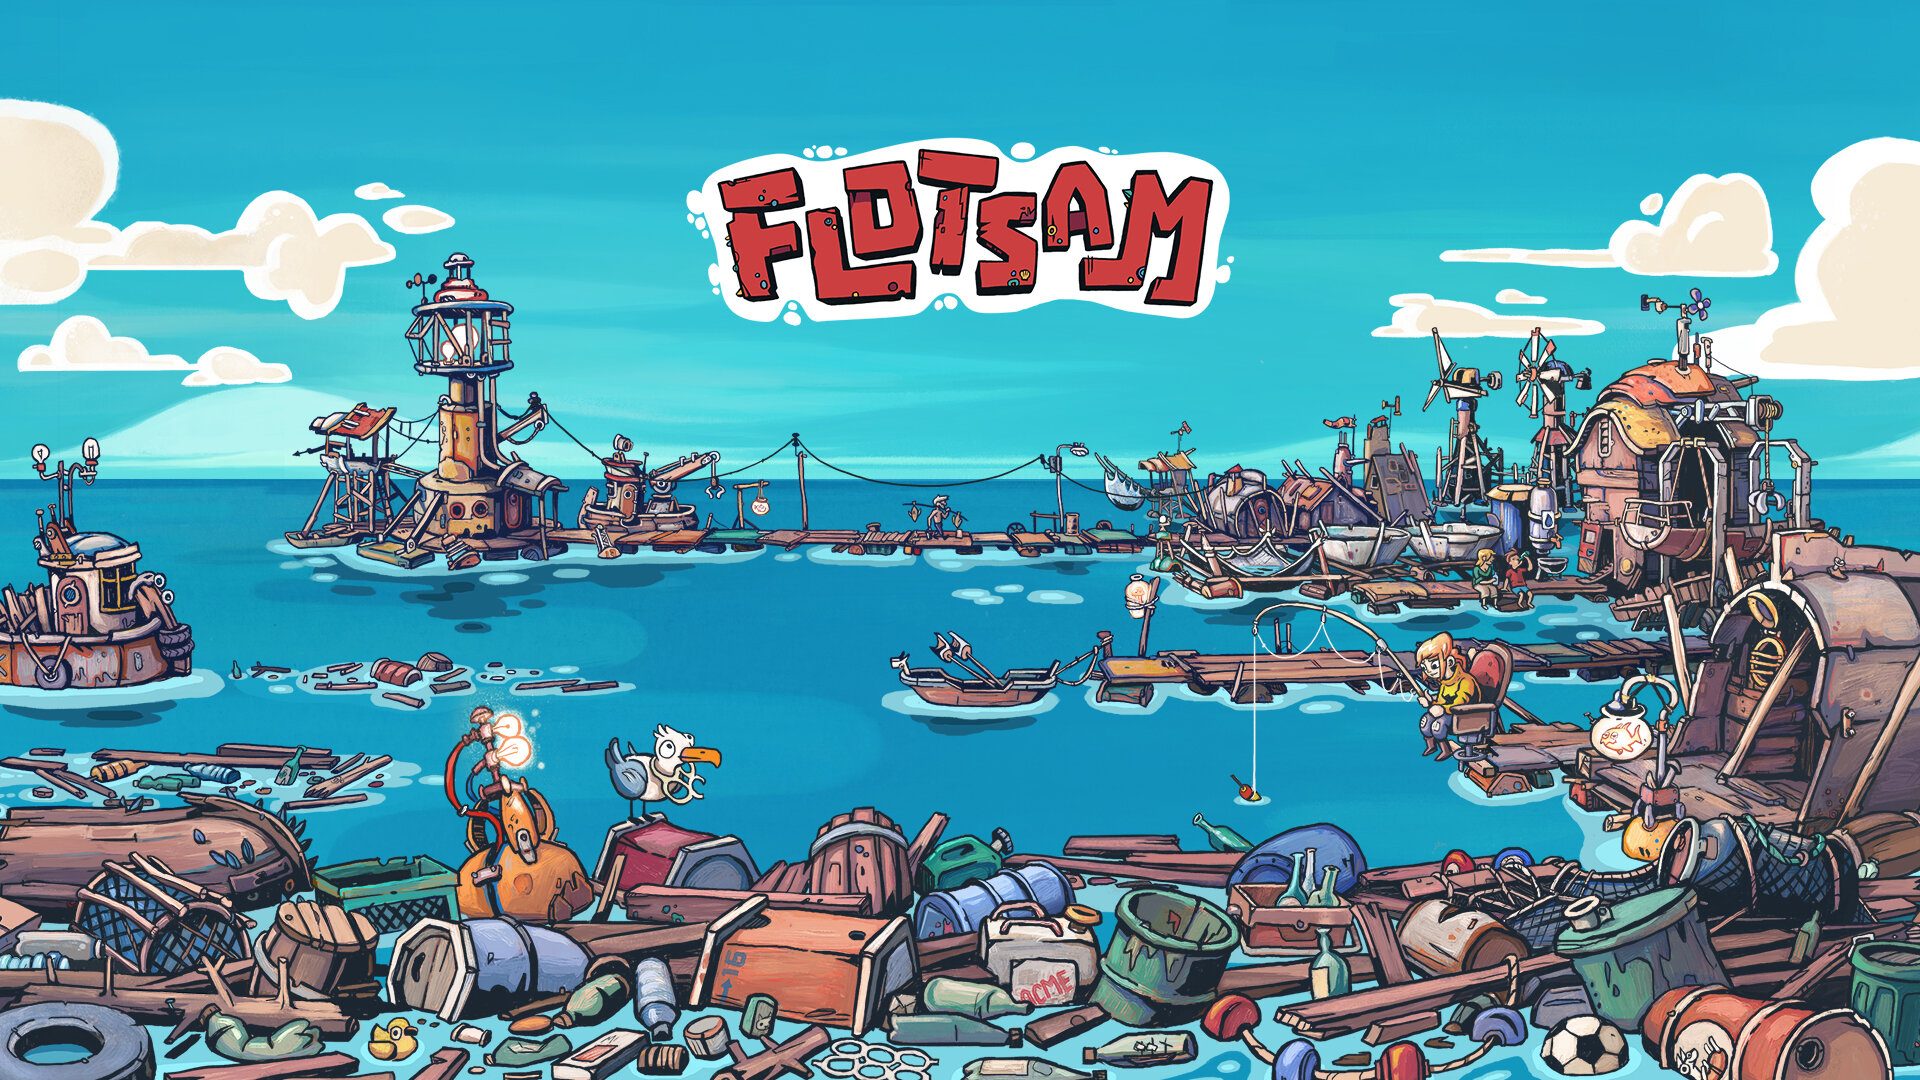 Flotsam - Pajama Llama Games ecological warning in game form!